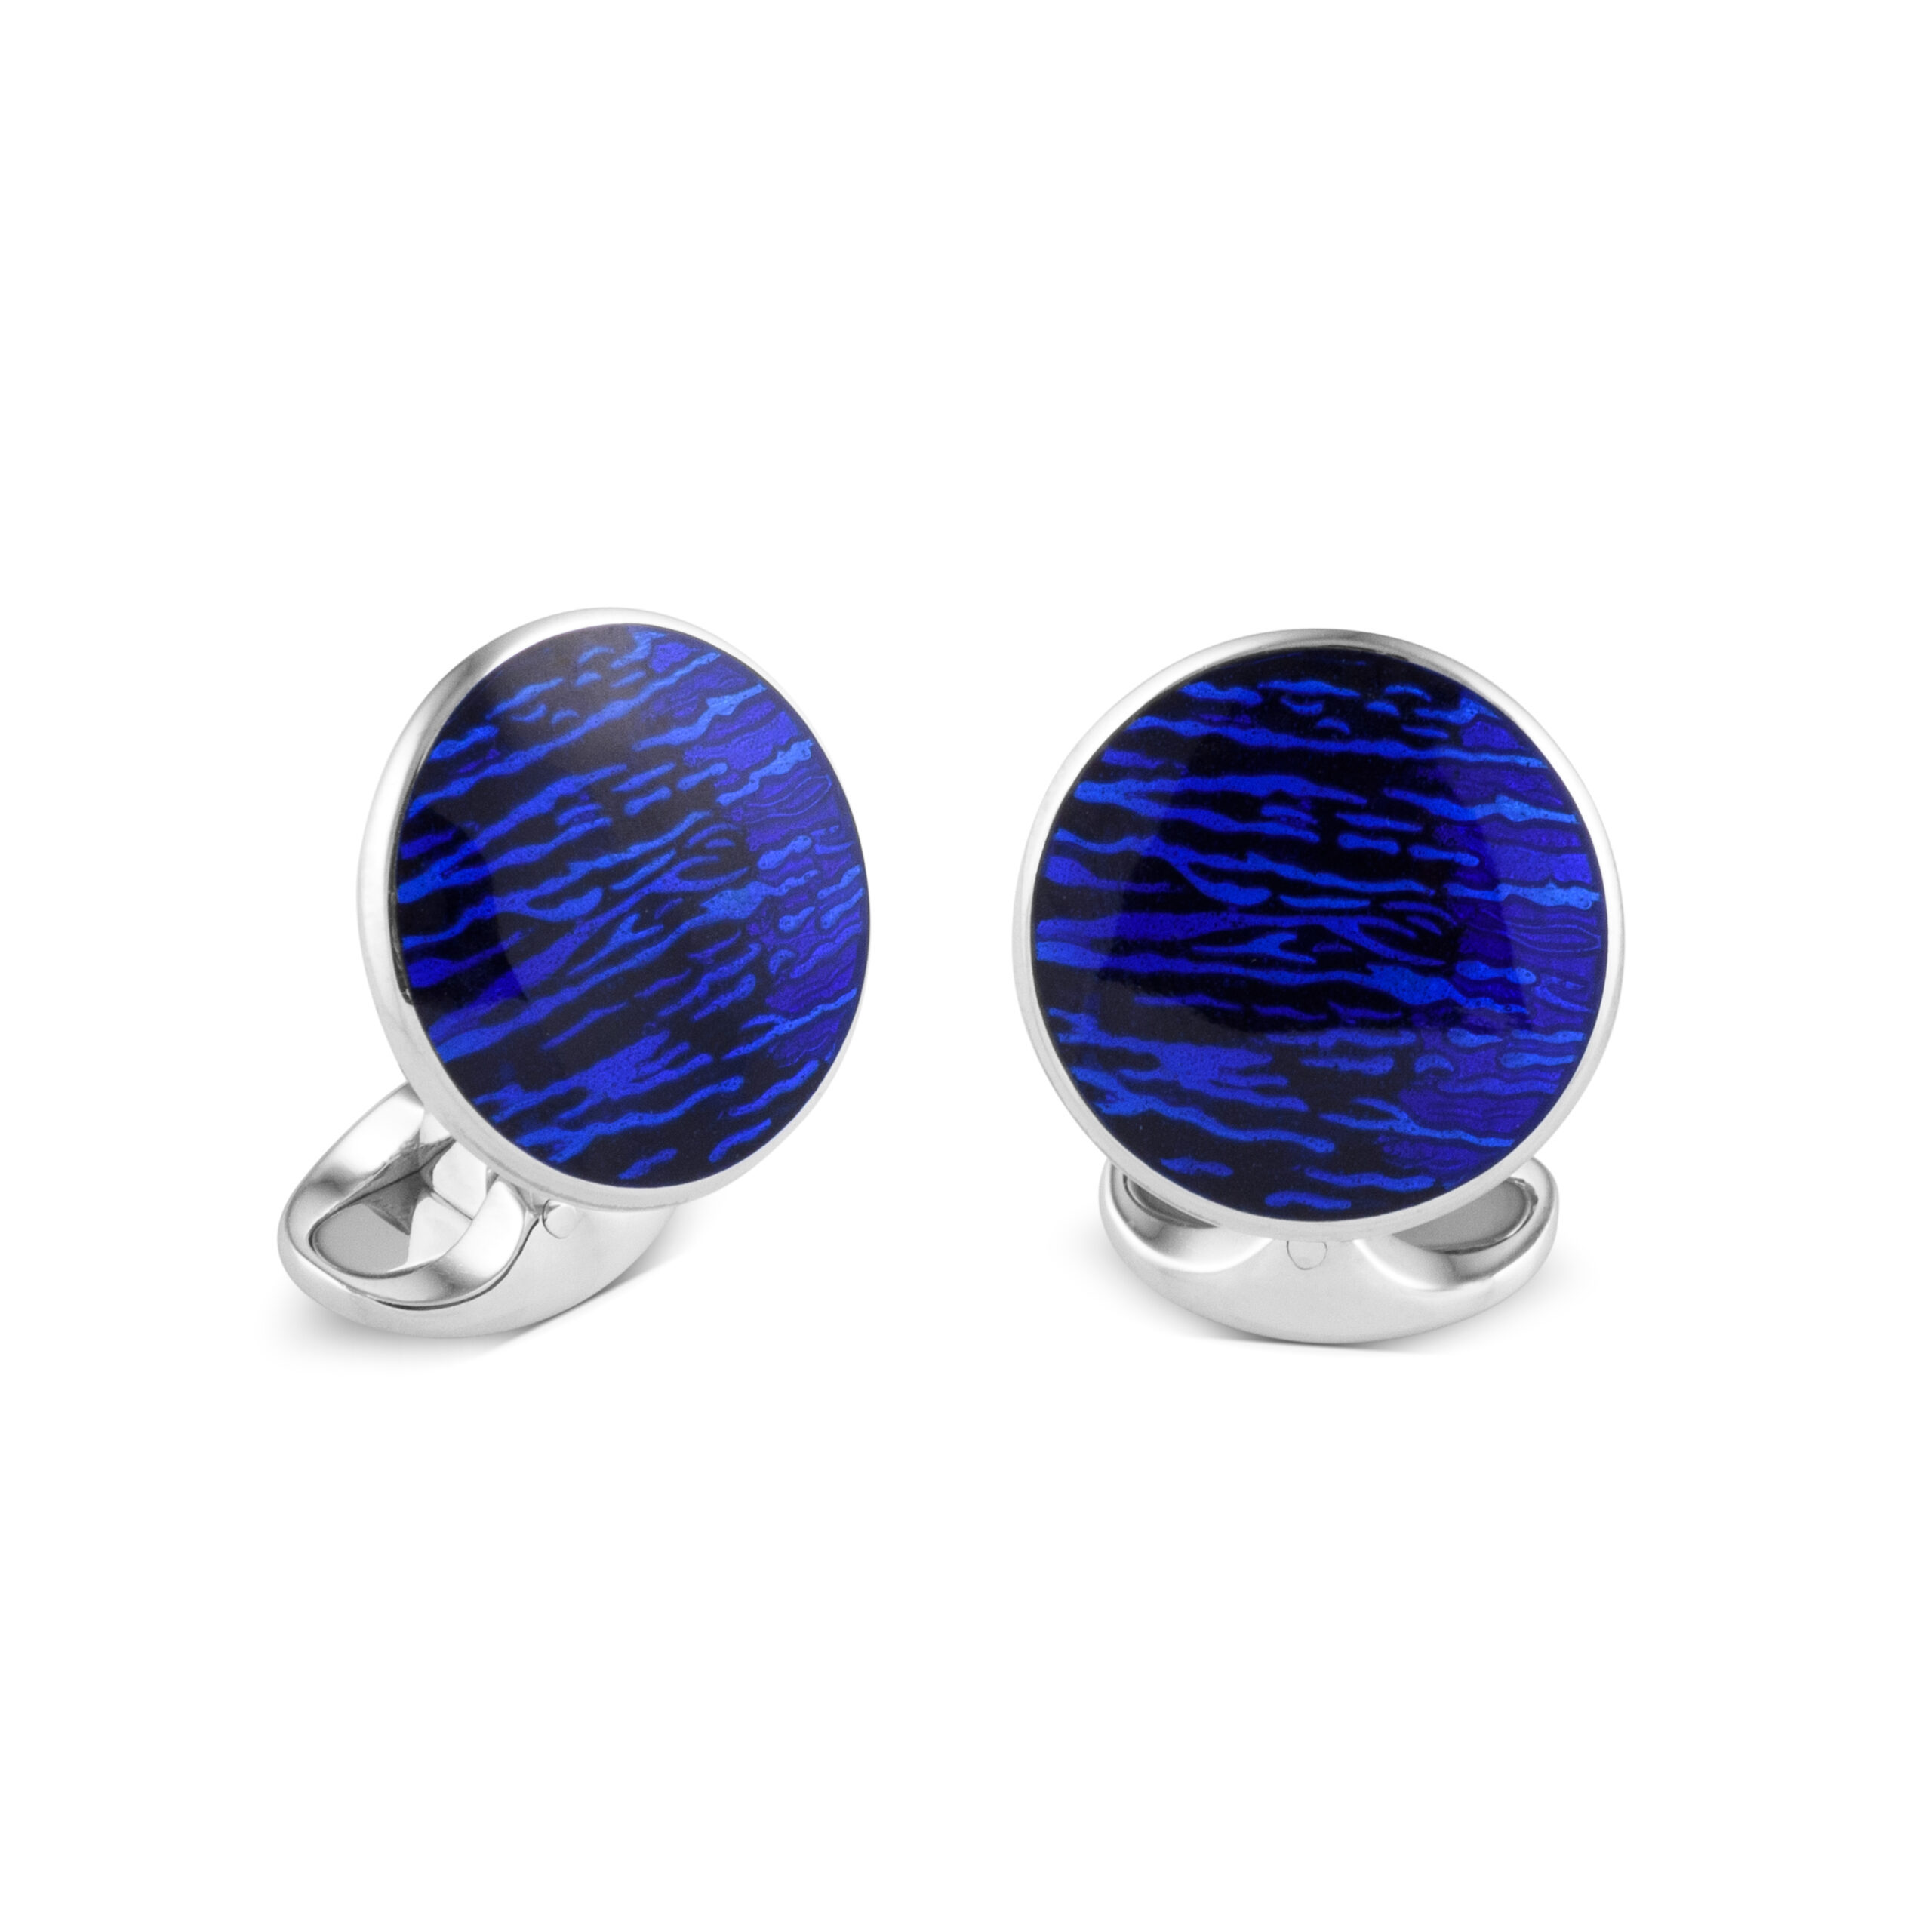 Sterling Silver Deep Blue And Black Cufflinks